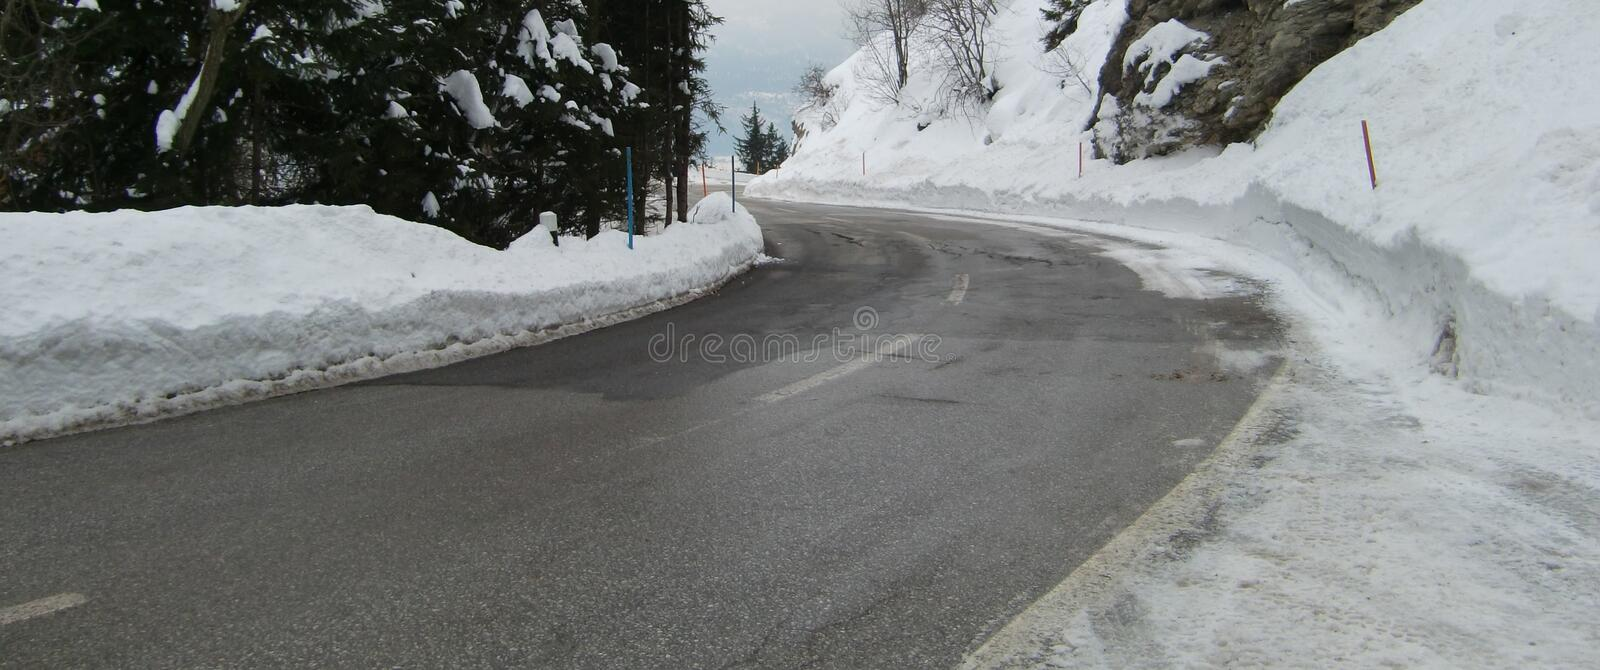 Download Icy road in winter scene stock photo. Image of infrastructure - 8085106